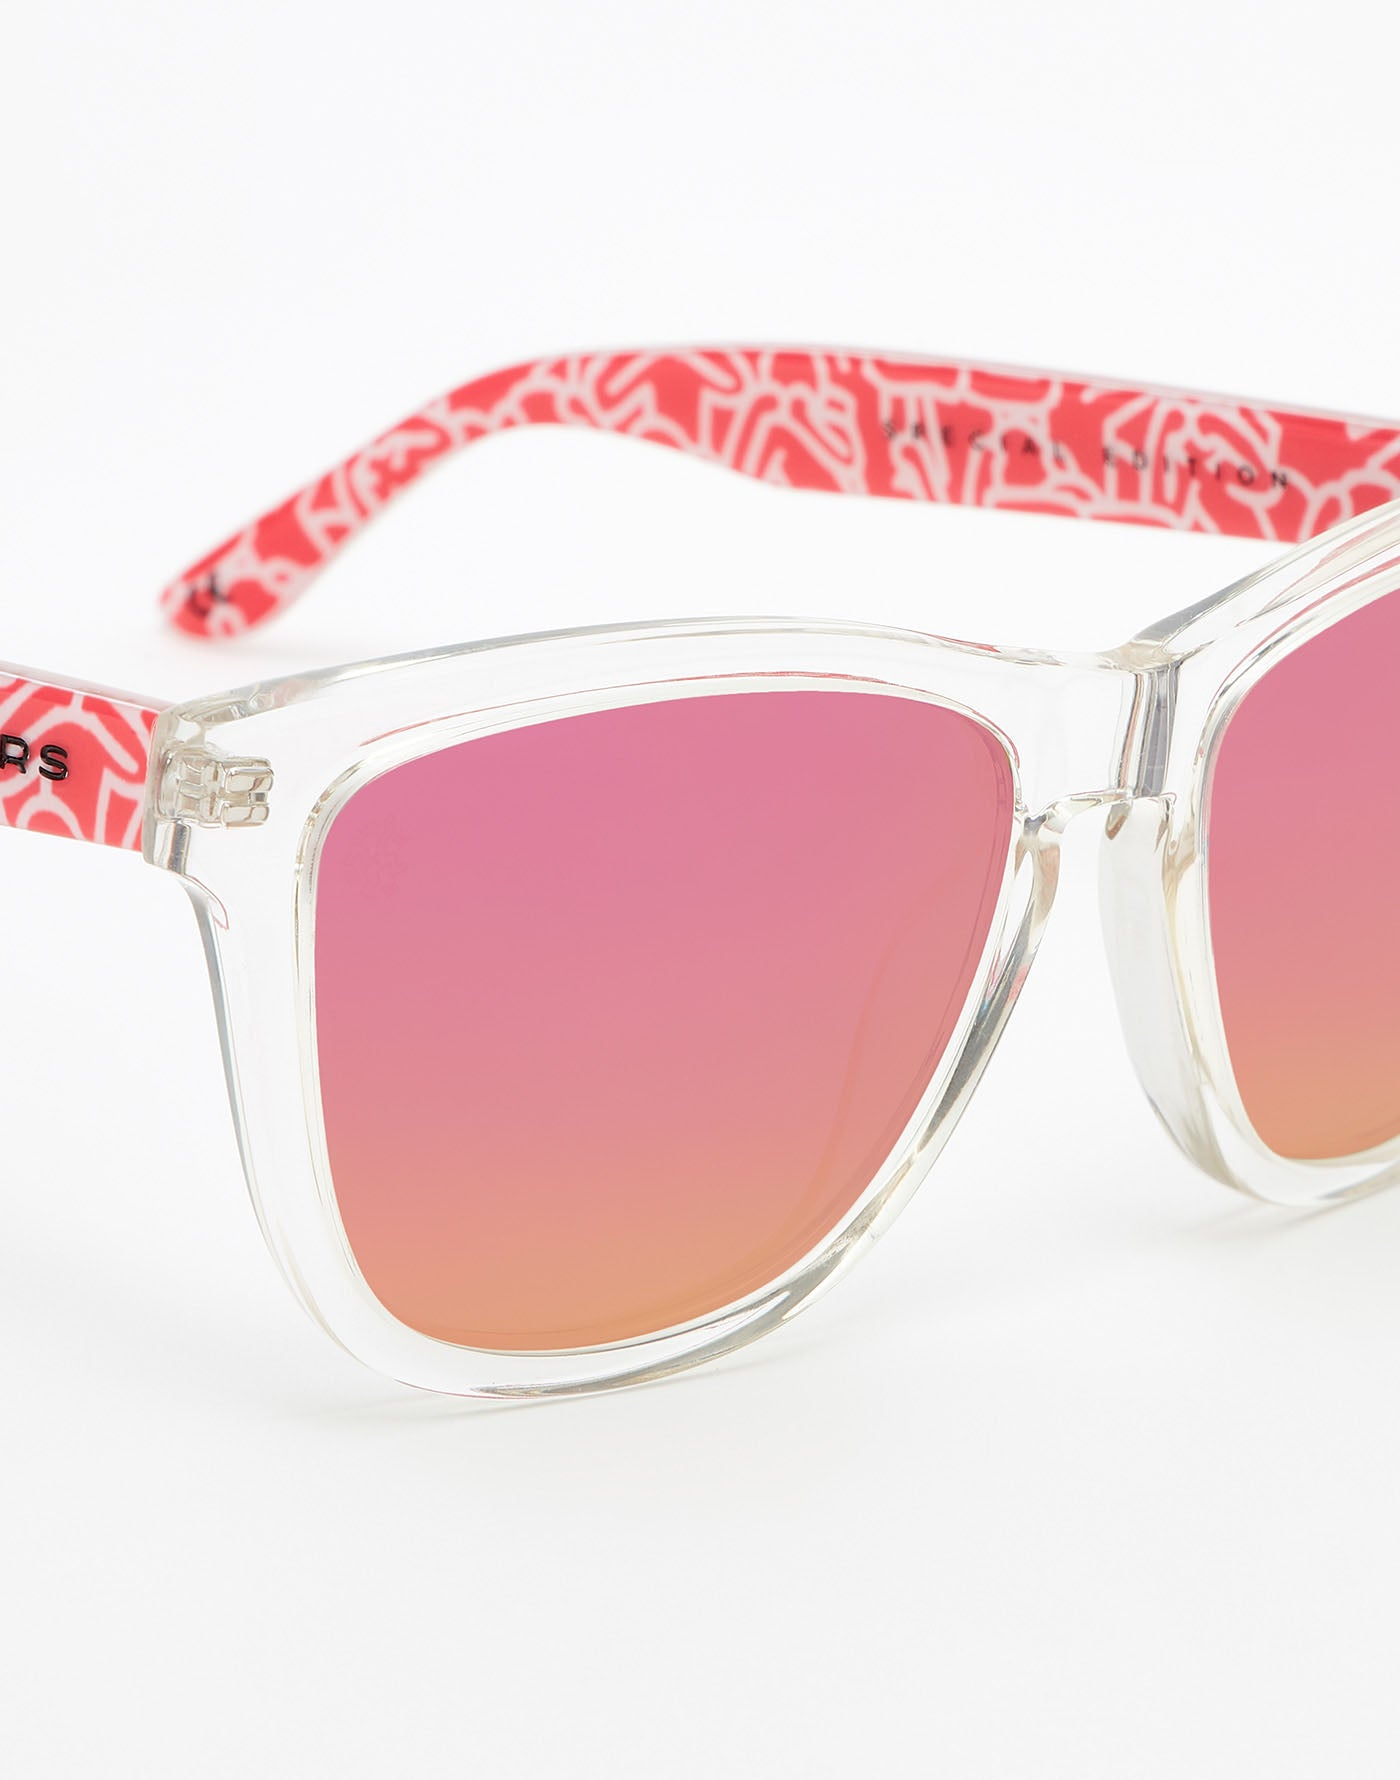 Keith Haring x Hawkers · Air Fuchsia